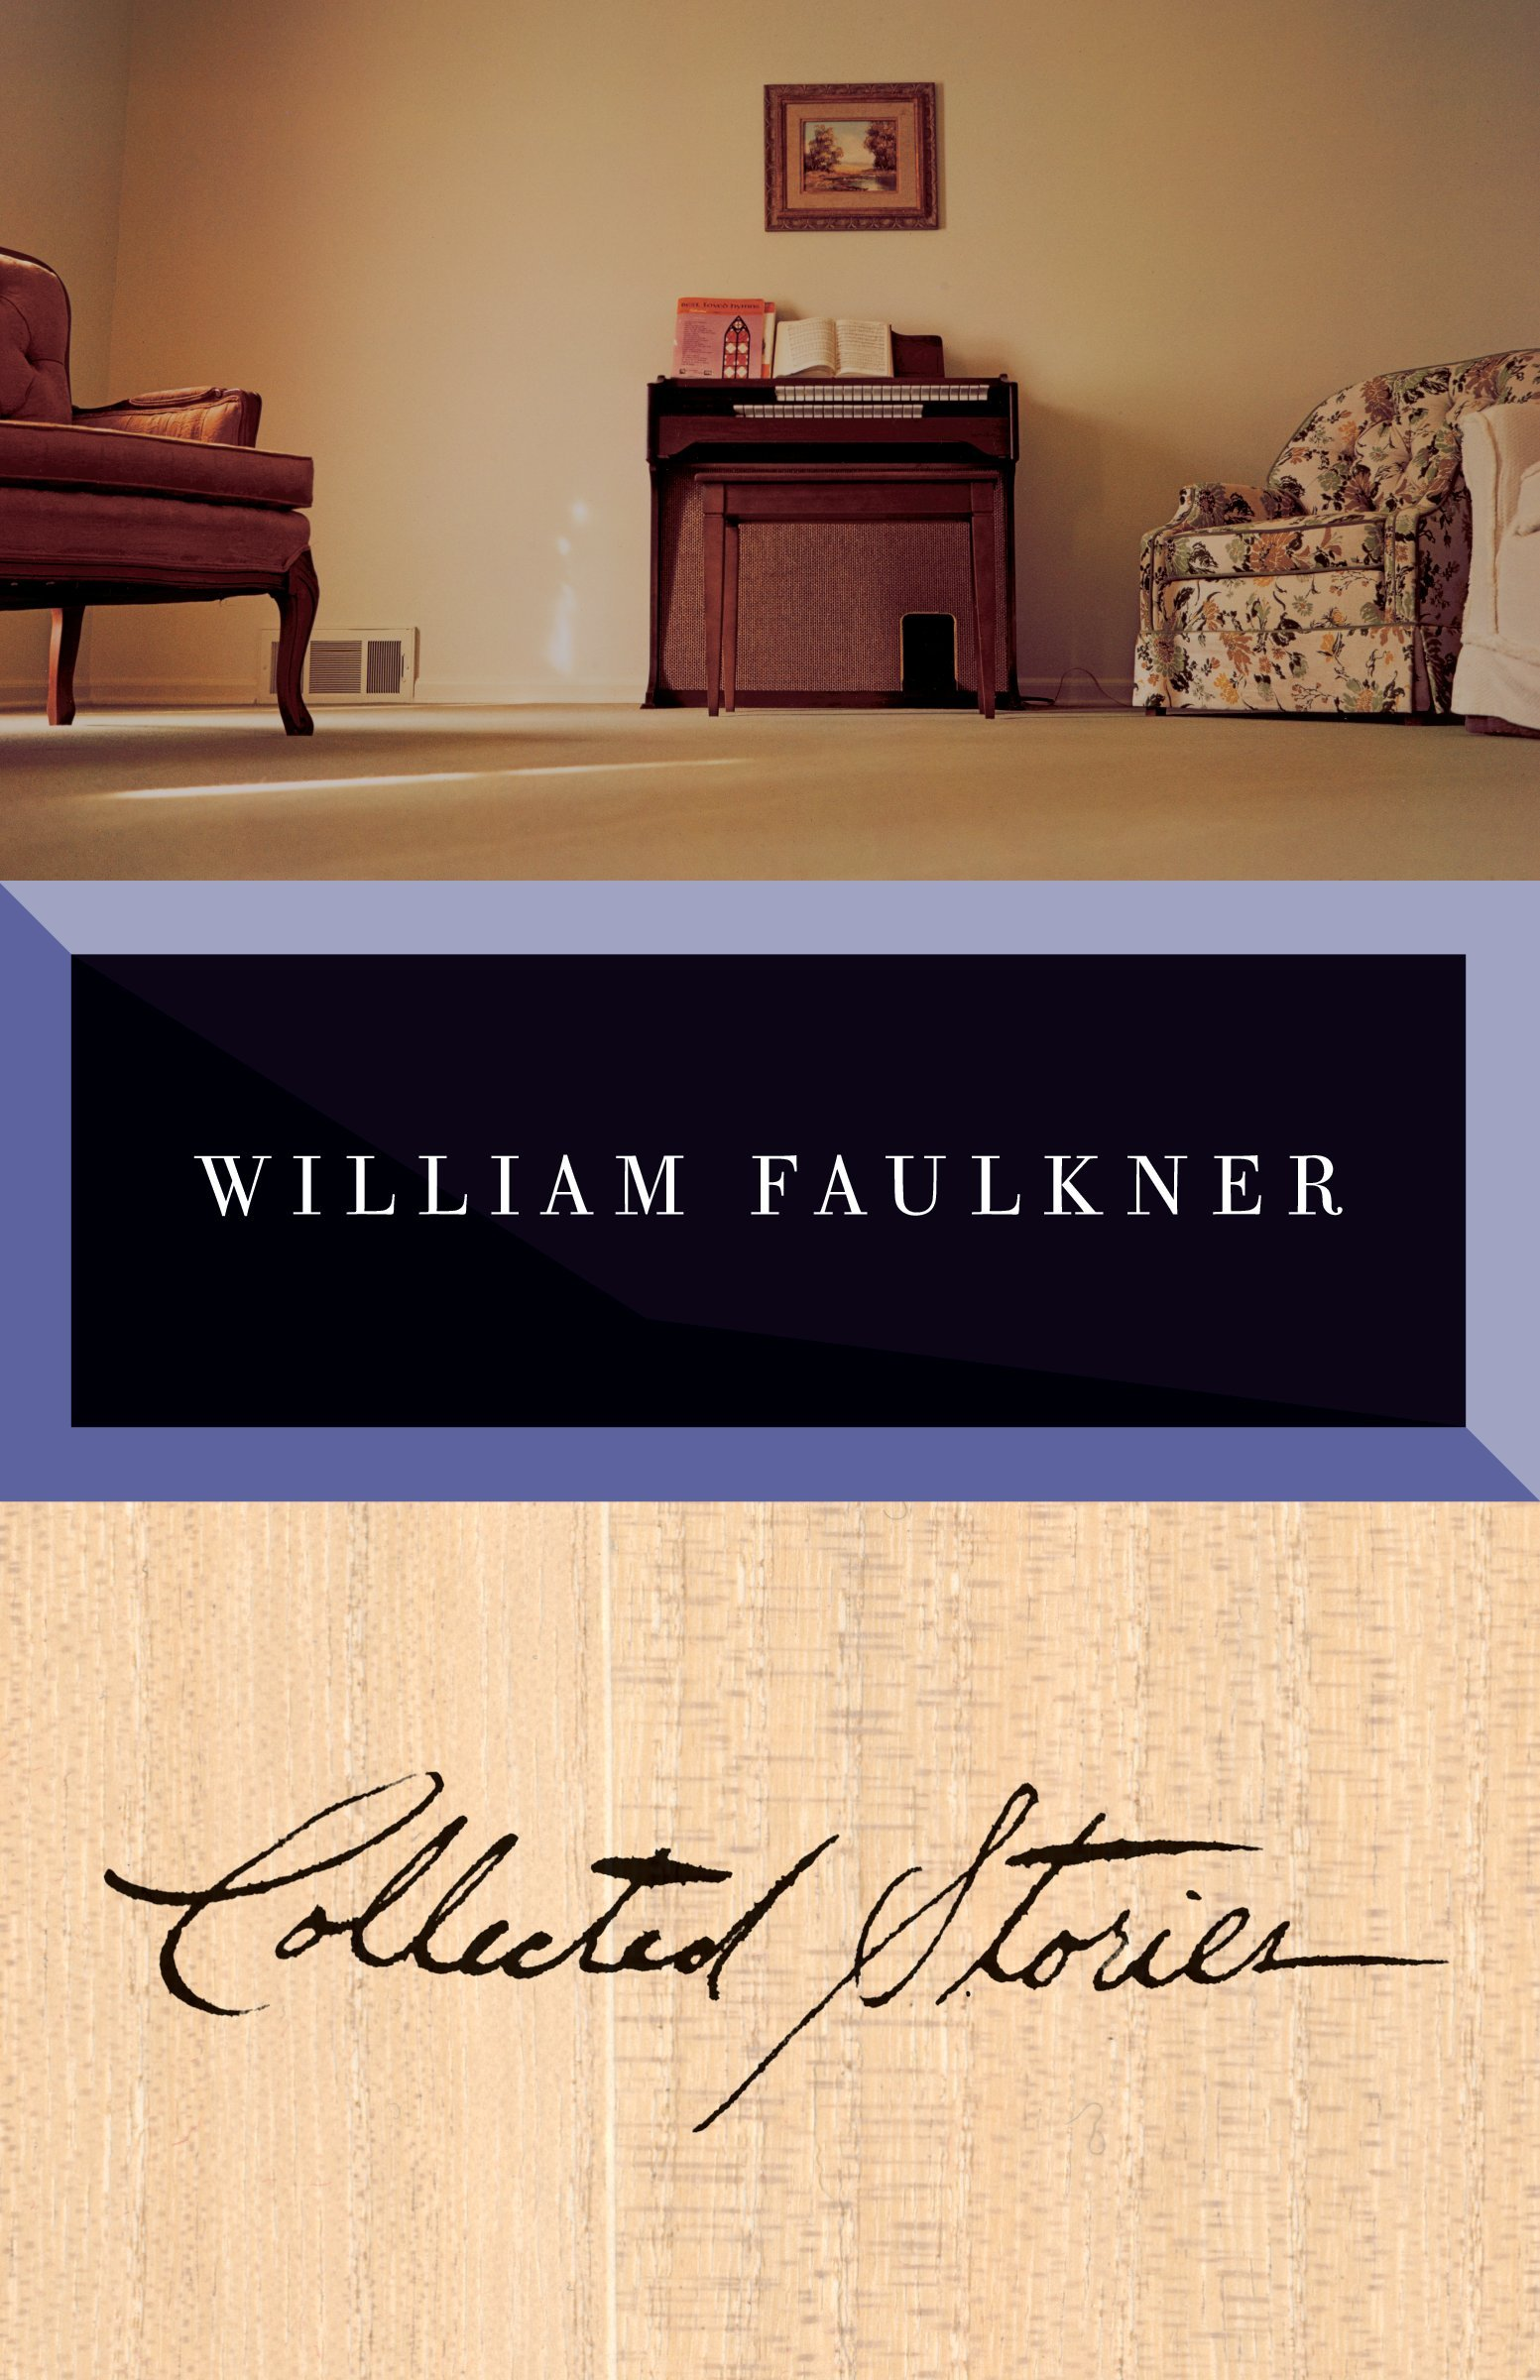 Faulkner Barn Burning Audiobook  William Faulkner Honored With  Audiobook Collected Stories Of William Faulkner By  Youtube